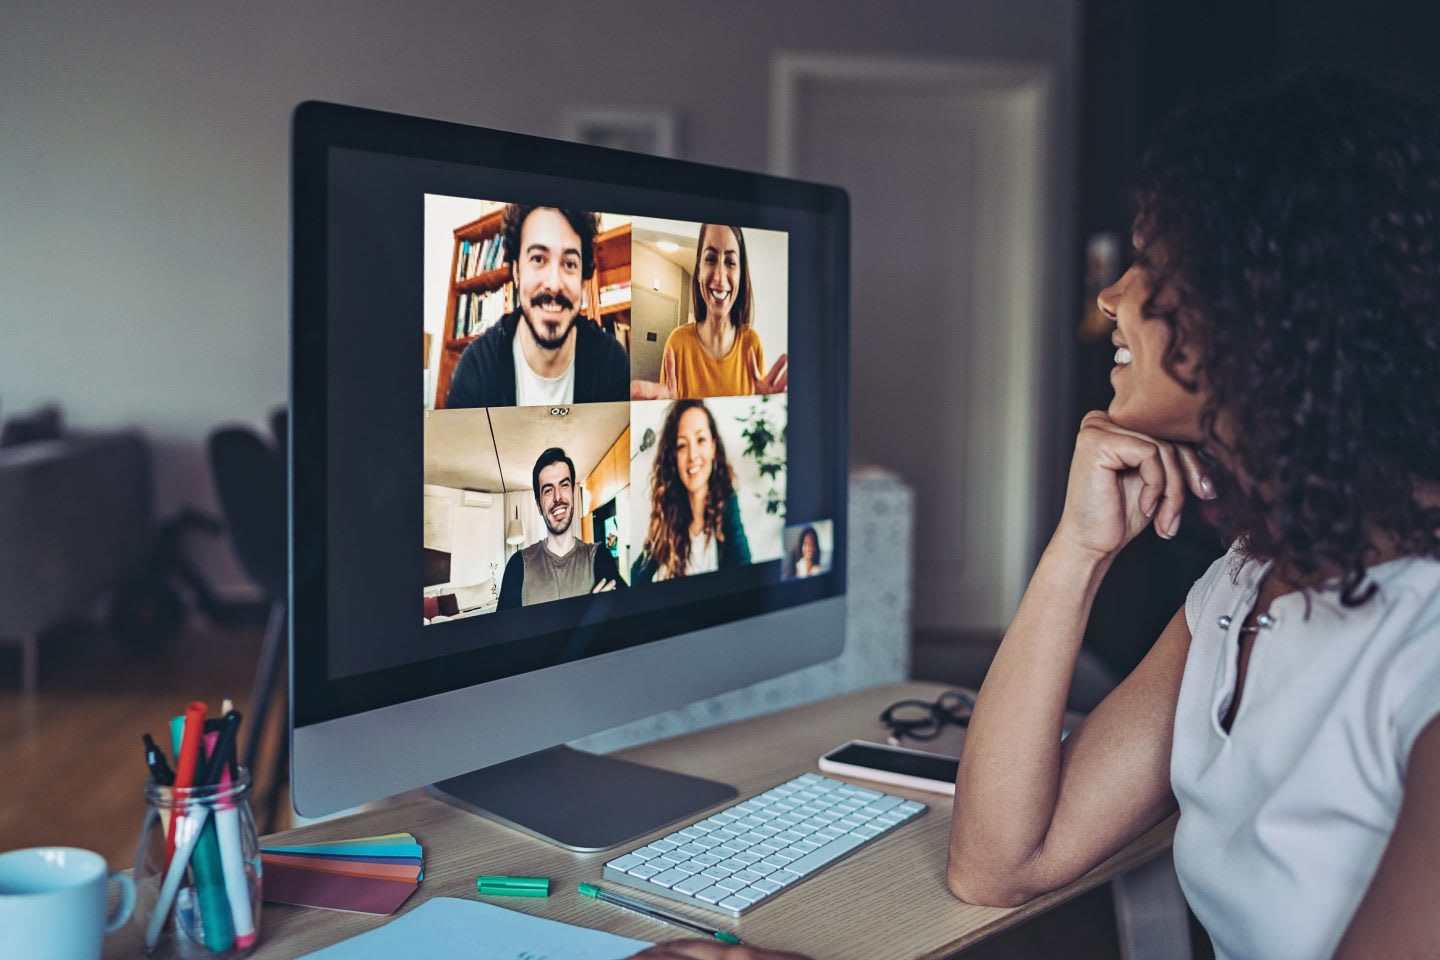 Group of people having a video conference through a desktop computer, remote working, home office, digital, technology, team, connection, online, meeting, business